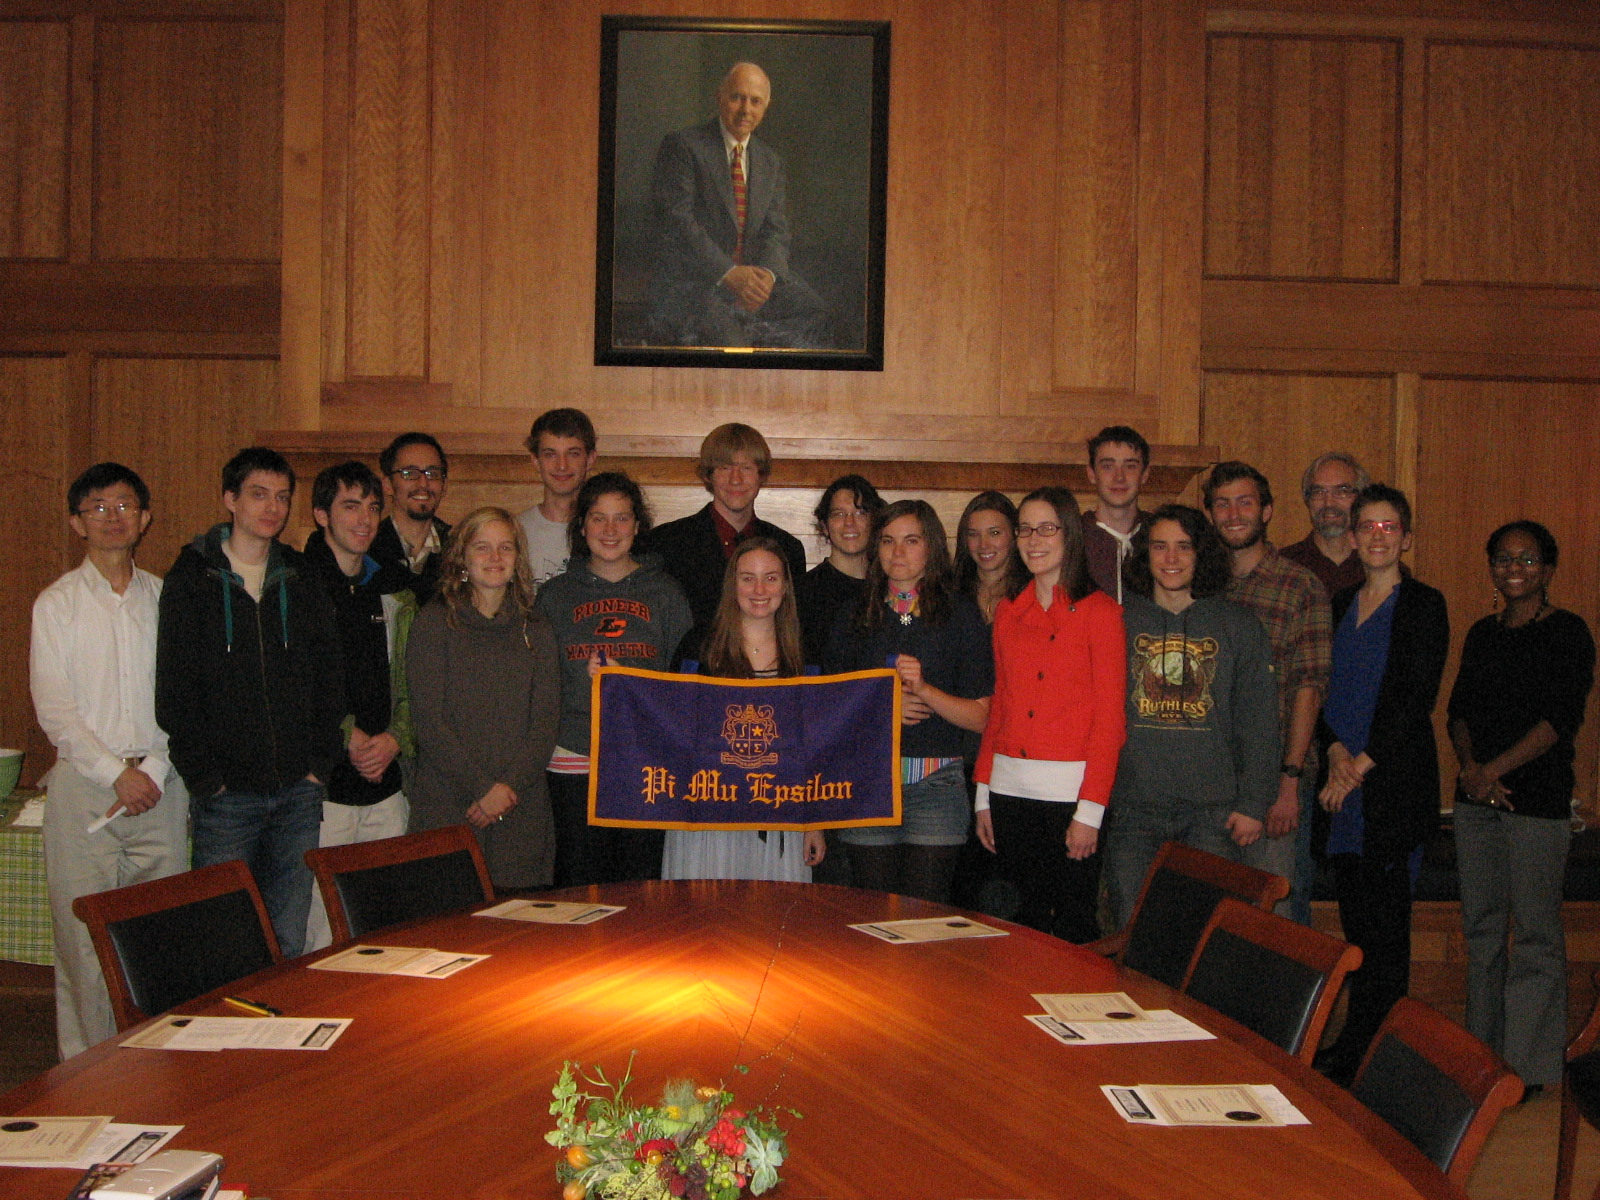 Pi Mu Epislon, Mathematics Honor Society, inducted 18 new student members in a ceremony on October 24, 2012.